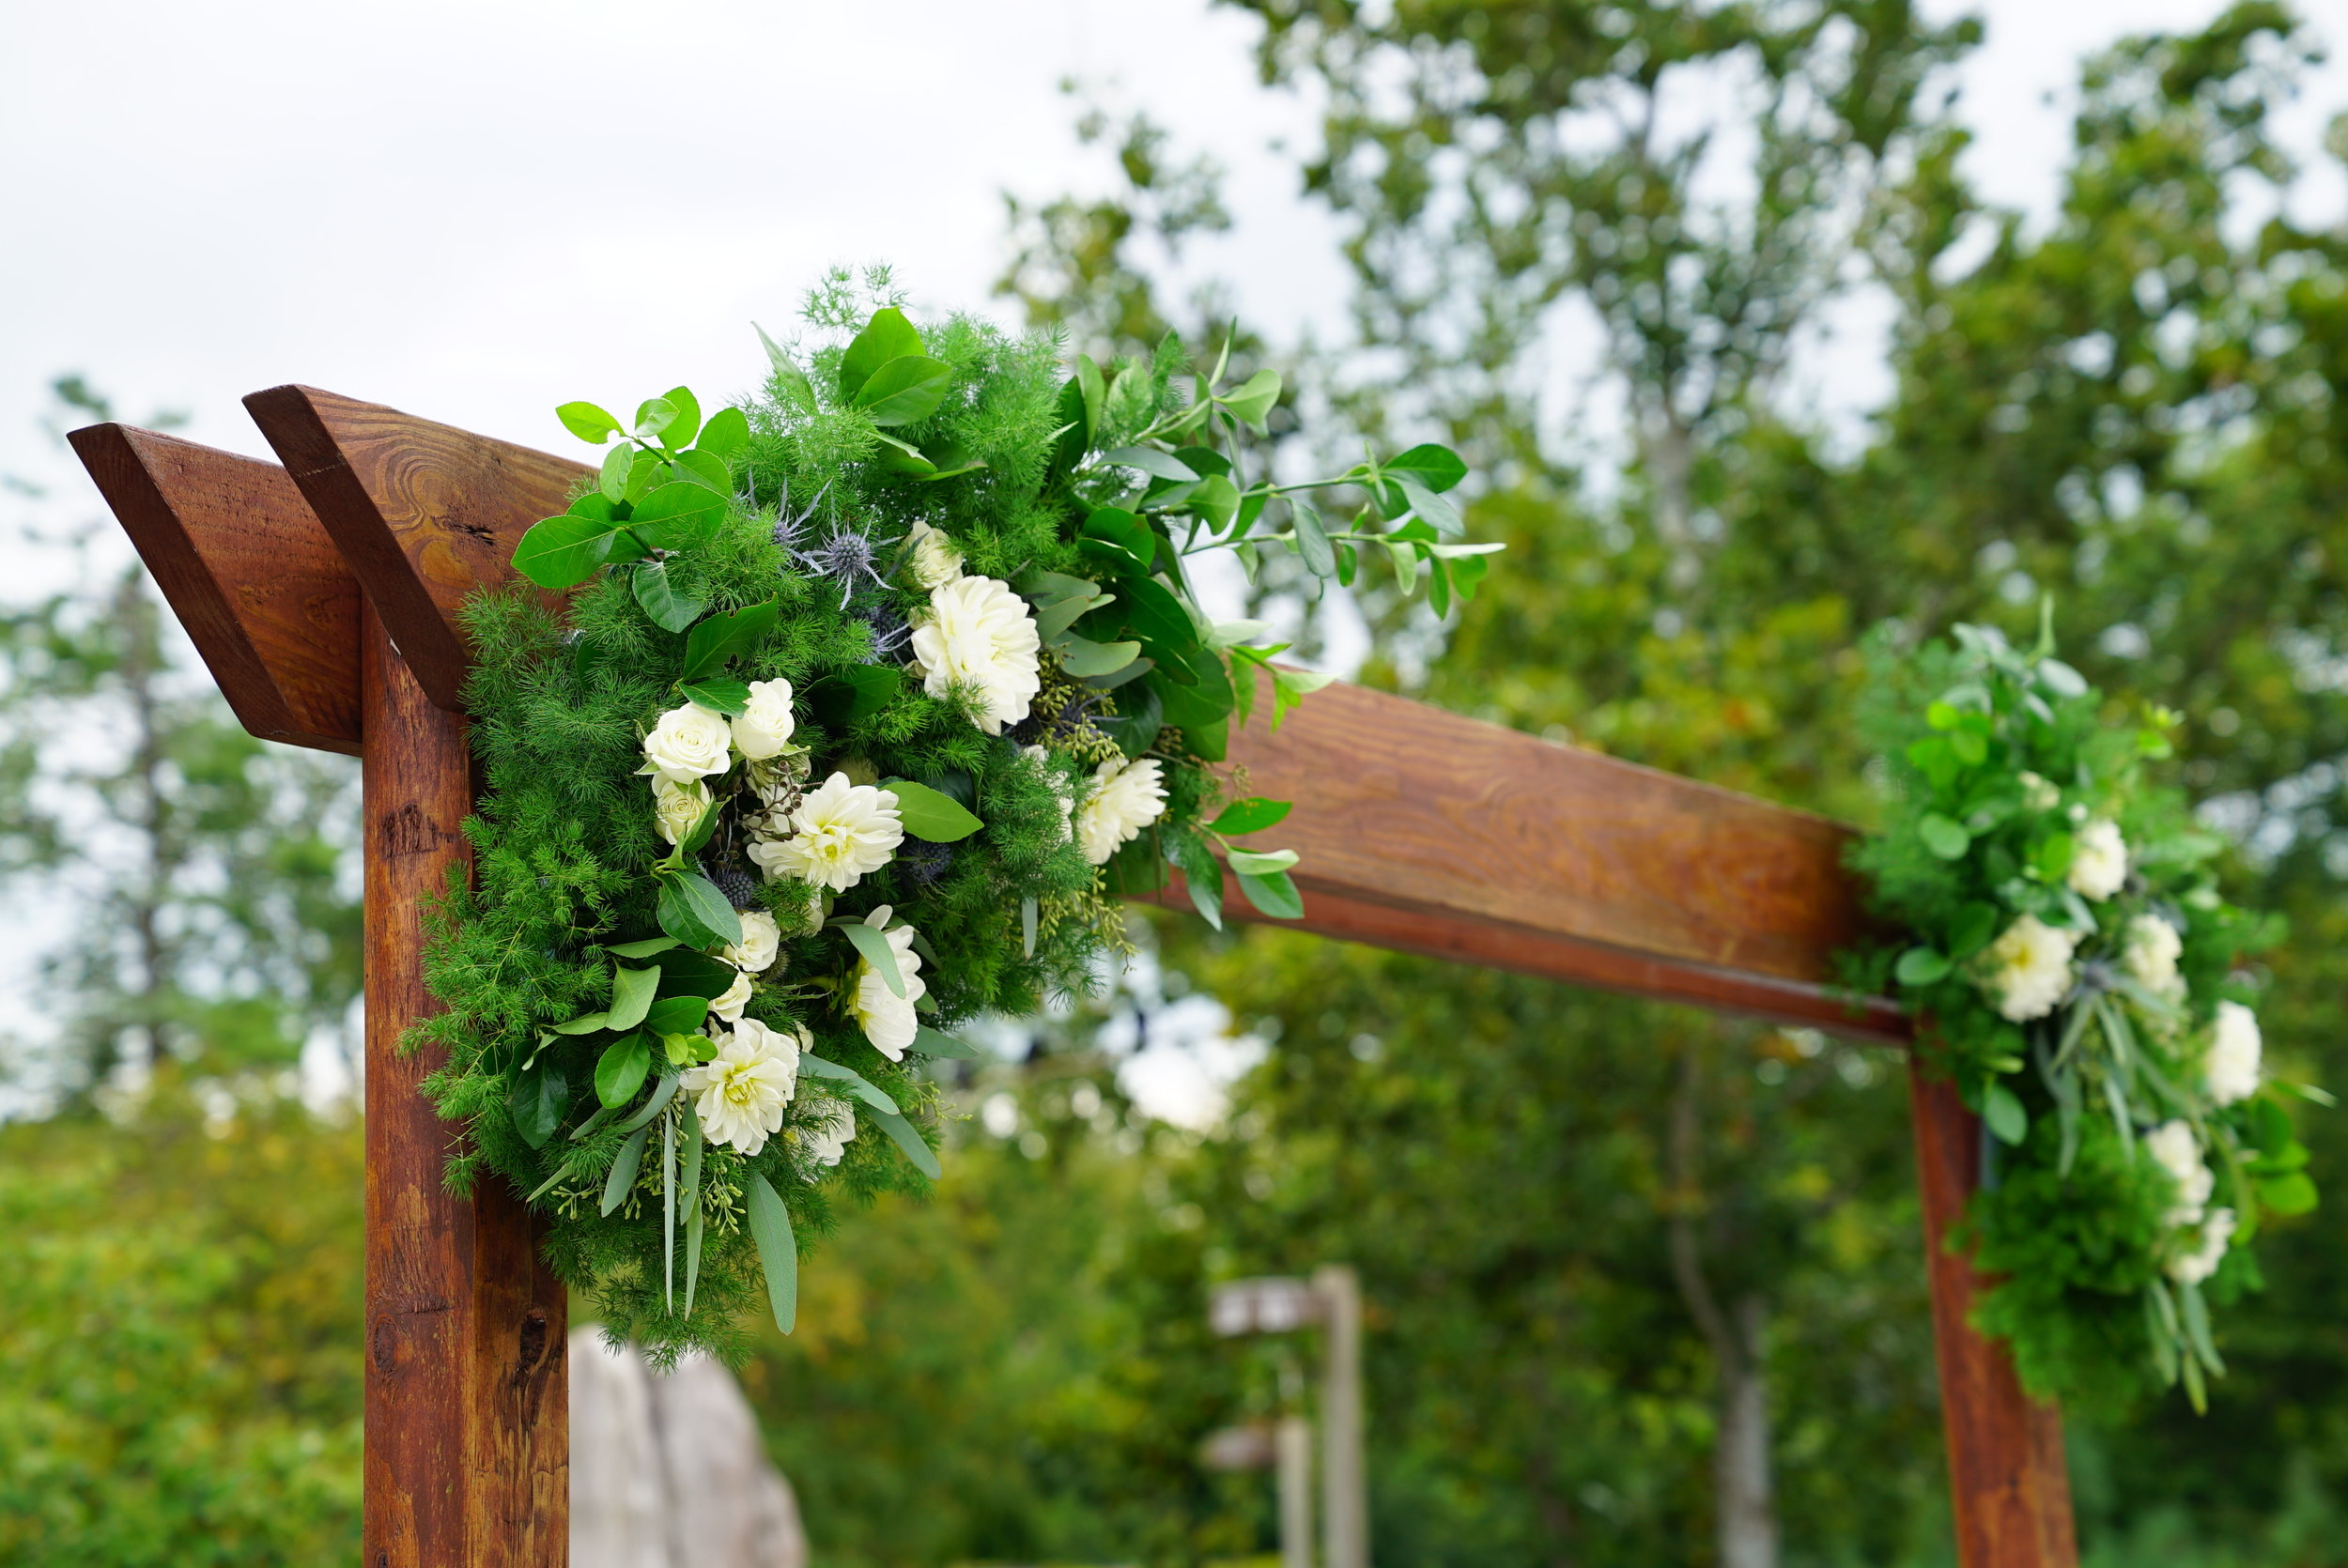 The arch was built using landscaping beams, then stained to match the wood on location. We sunk the uprights into concrete (poured into decorative pots) since the ceremony was on a wooden deck and we had no other way of anchoring the arch into the ground.